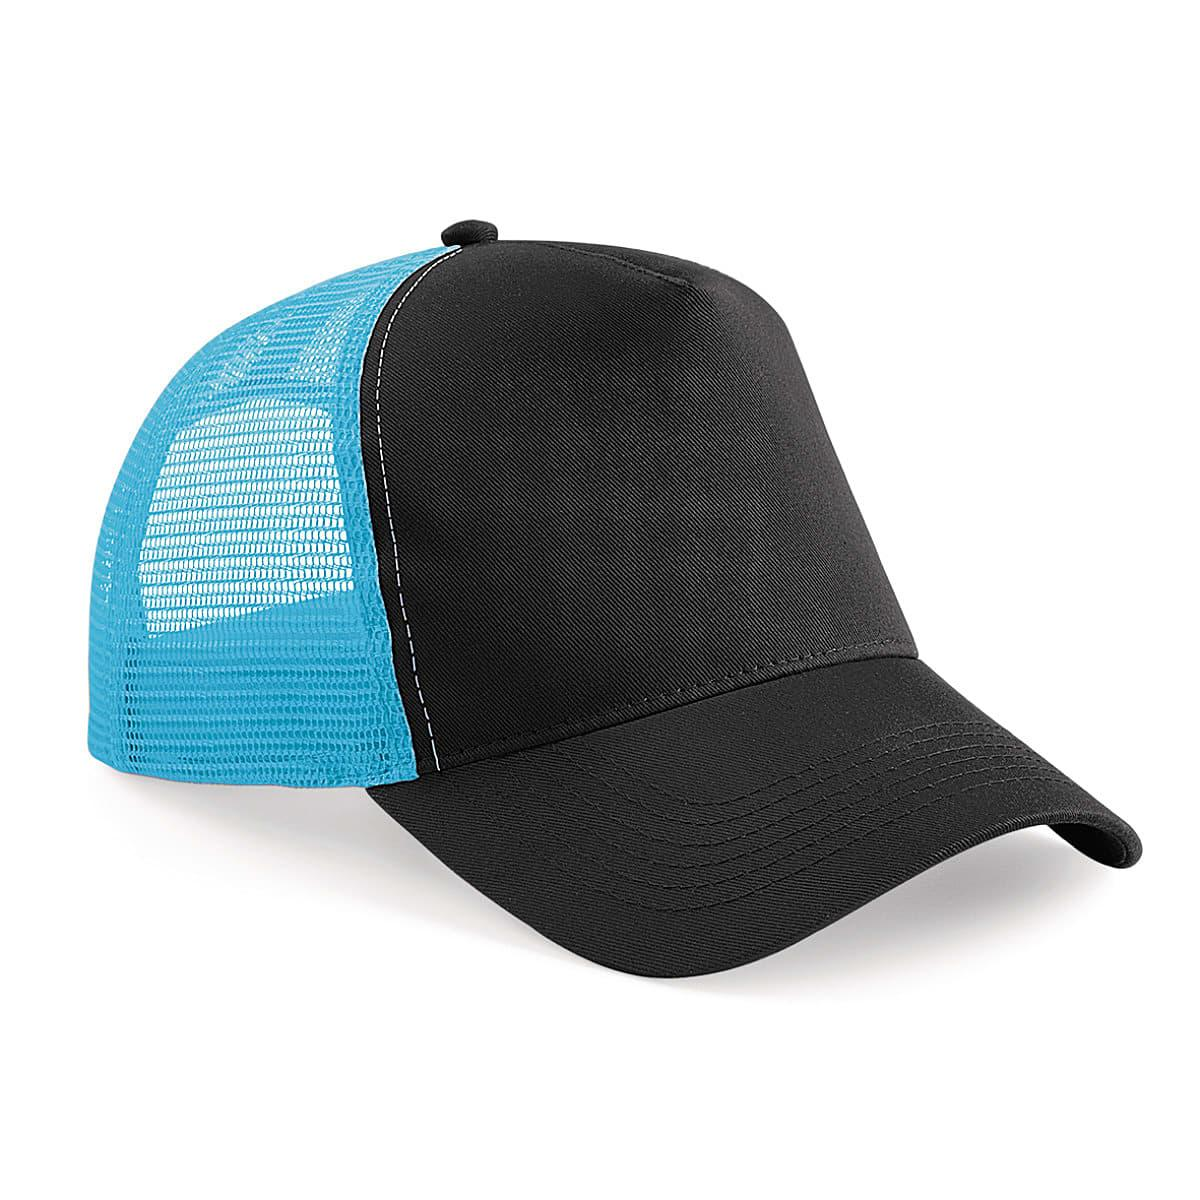 Beechfield Snapback Trucker Cap in Black / Surf Blue (Product Code: B640)